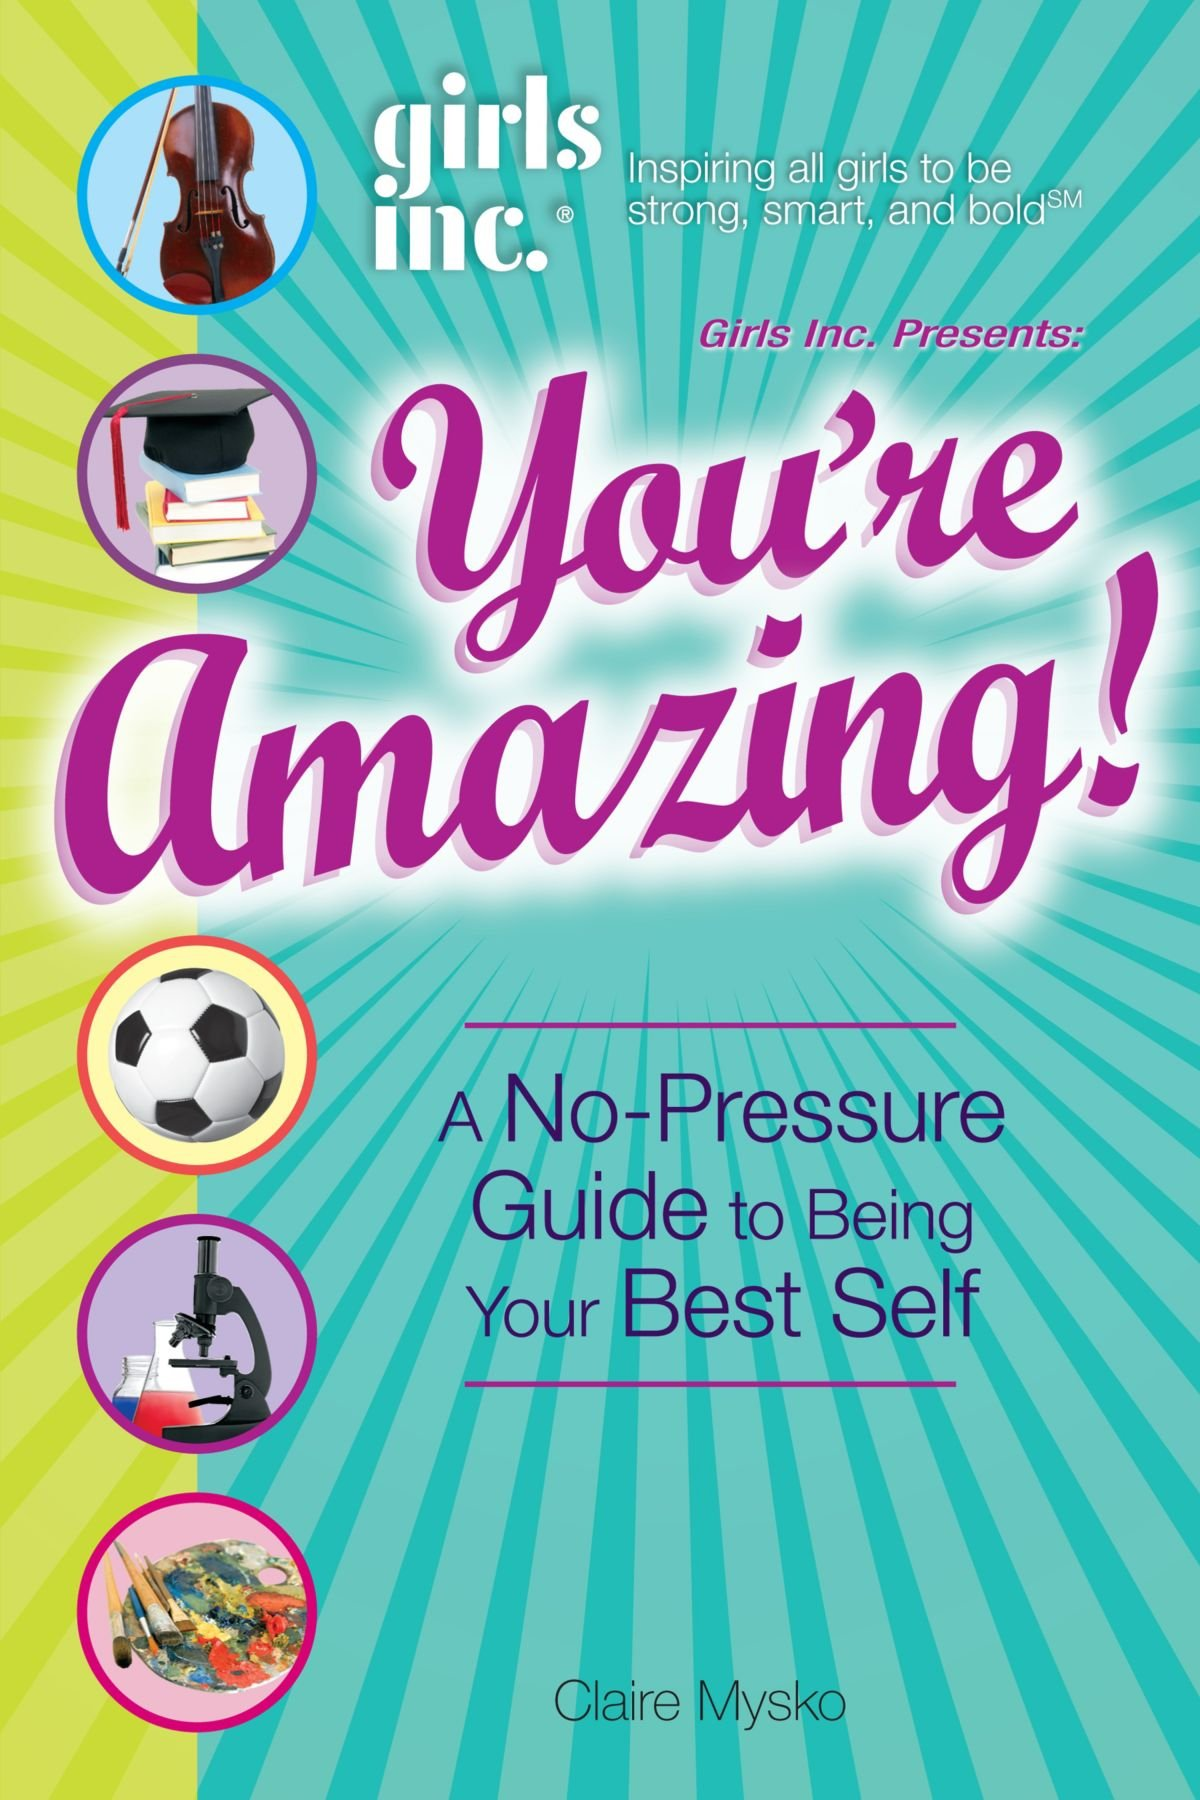 Girls Inc. Presents: You're Amazing!: A No-Pressure Guide to Being Your Best Self ebook